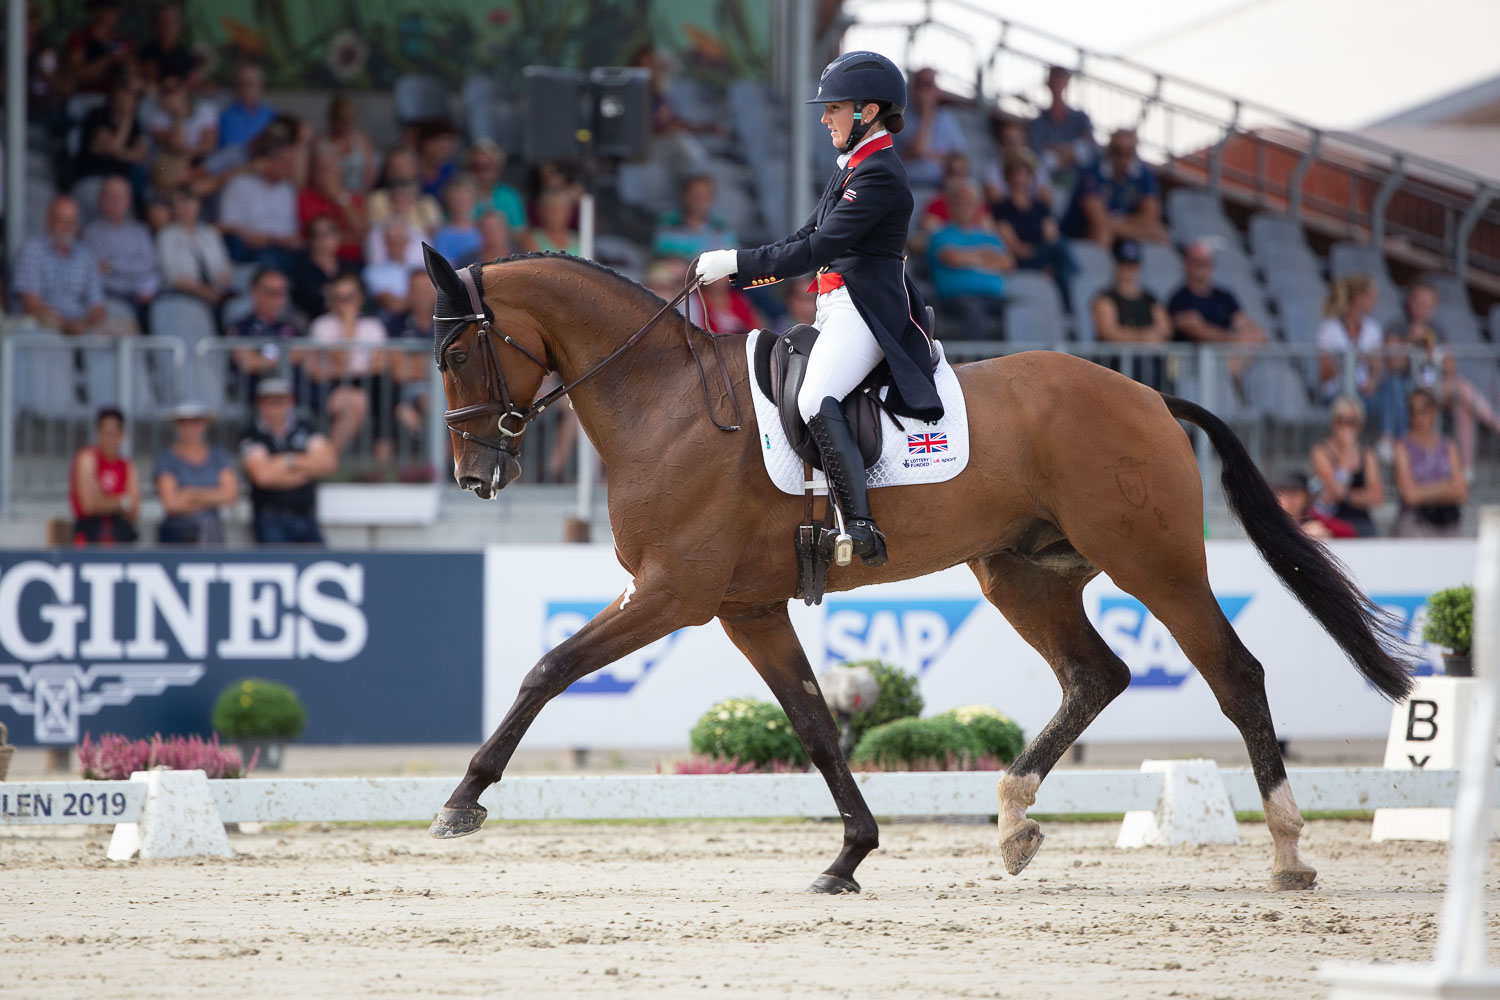 Laura Kollet (GBR) takes the lead after the first day of dressage